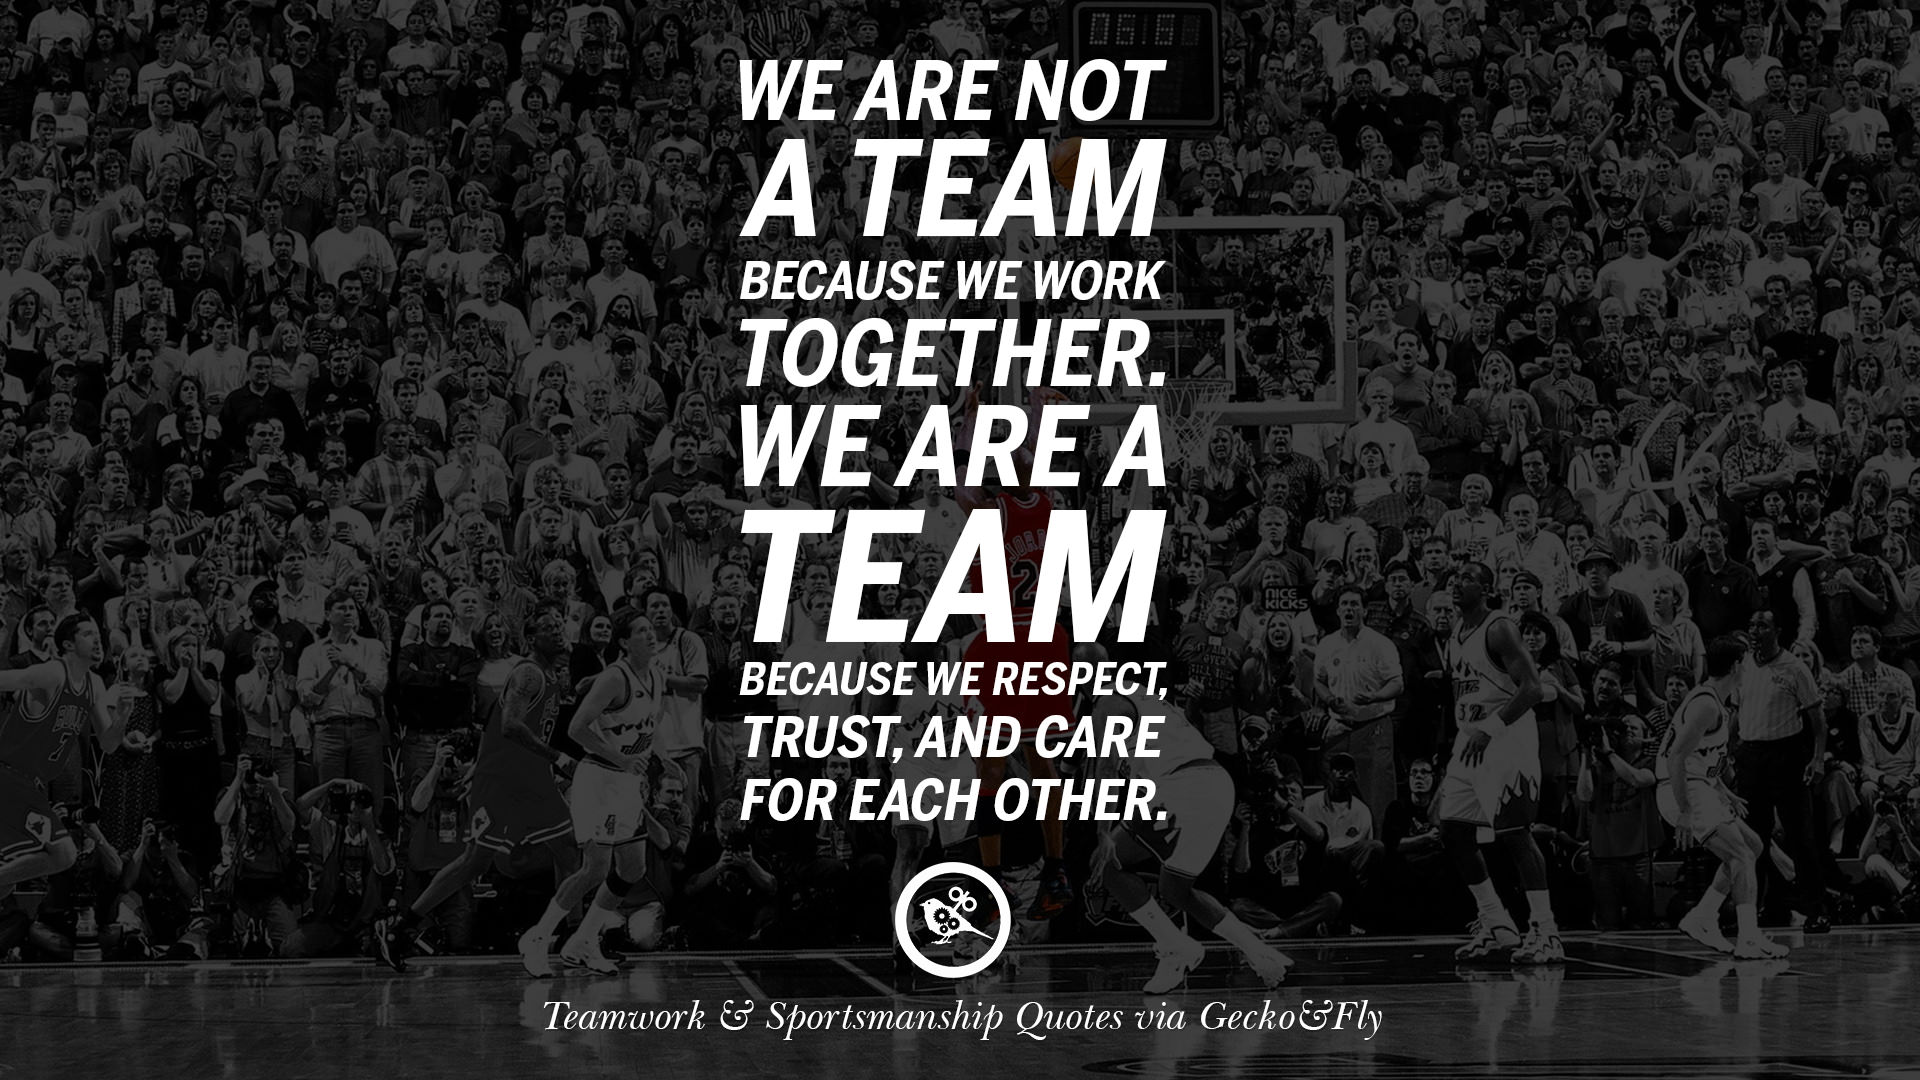 Teamwork Quotes 50 Inspirational Quotes About Teamwork And Sportsmanship